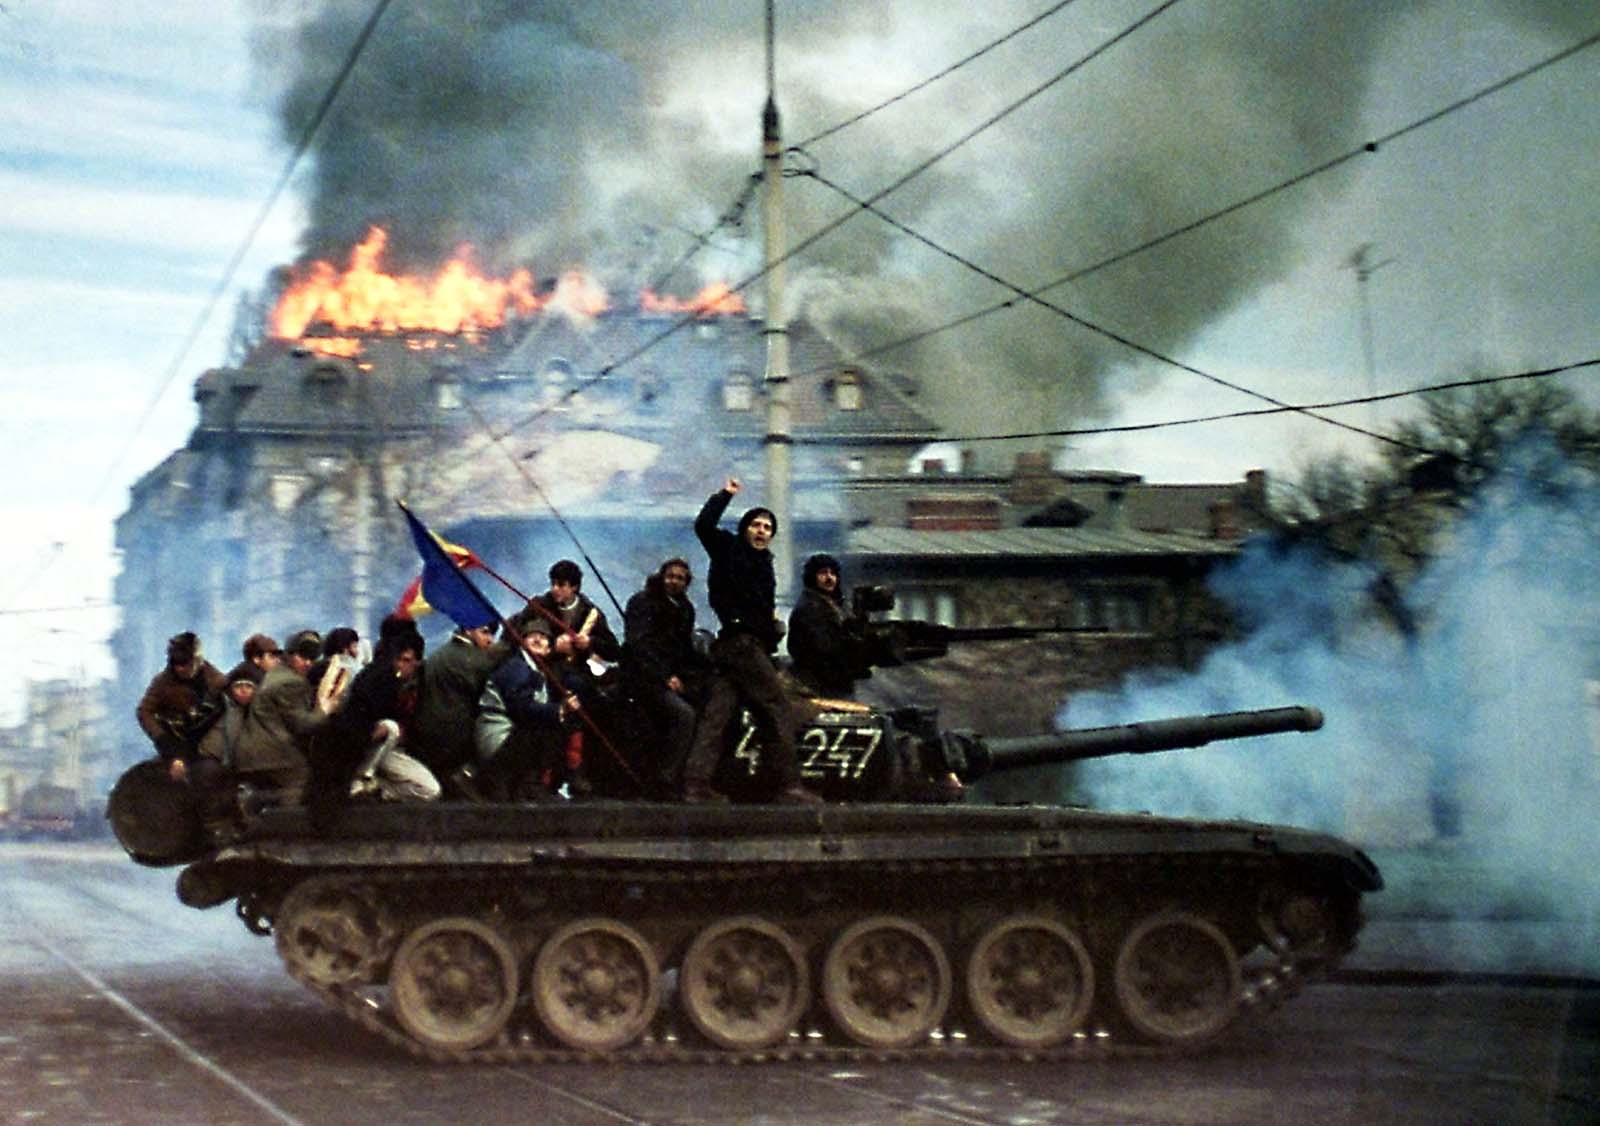 Romanian demonstrators sit on top of a tank as it passes in front of a burning building, December 22 1989.